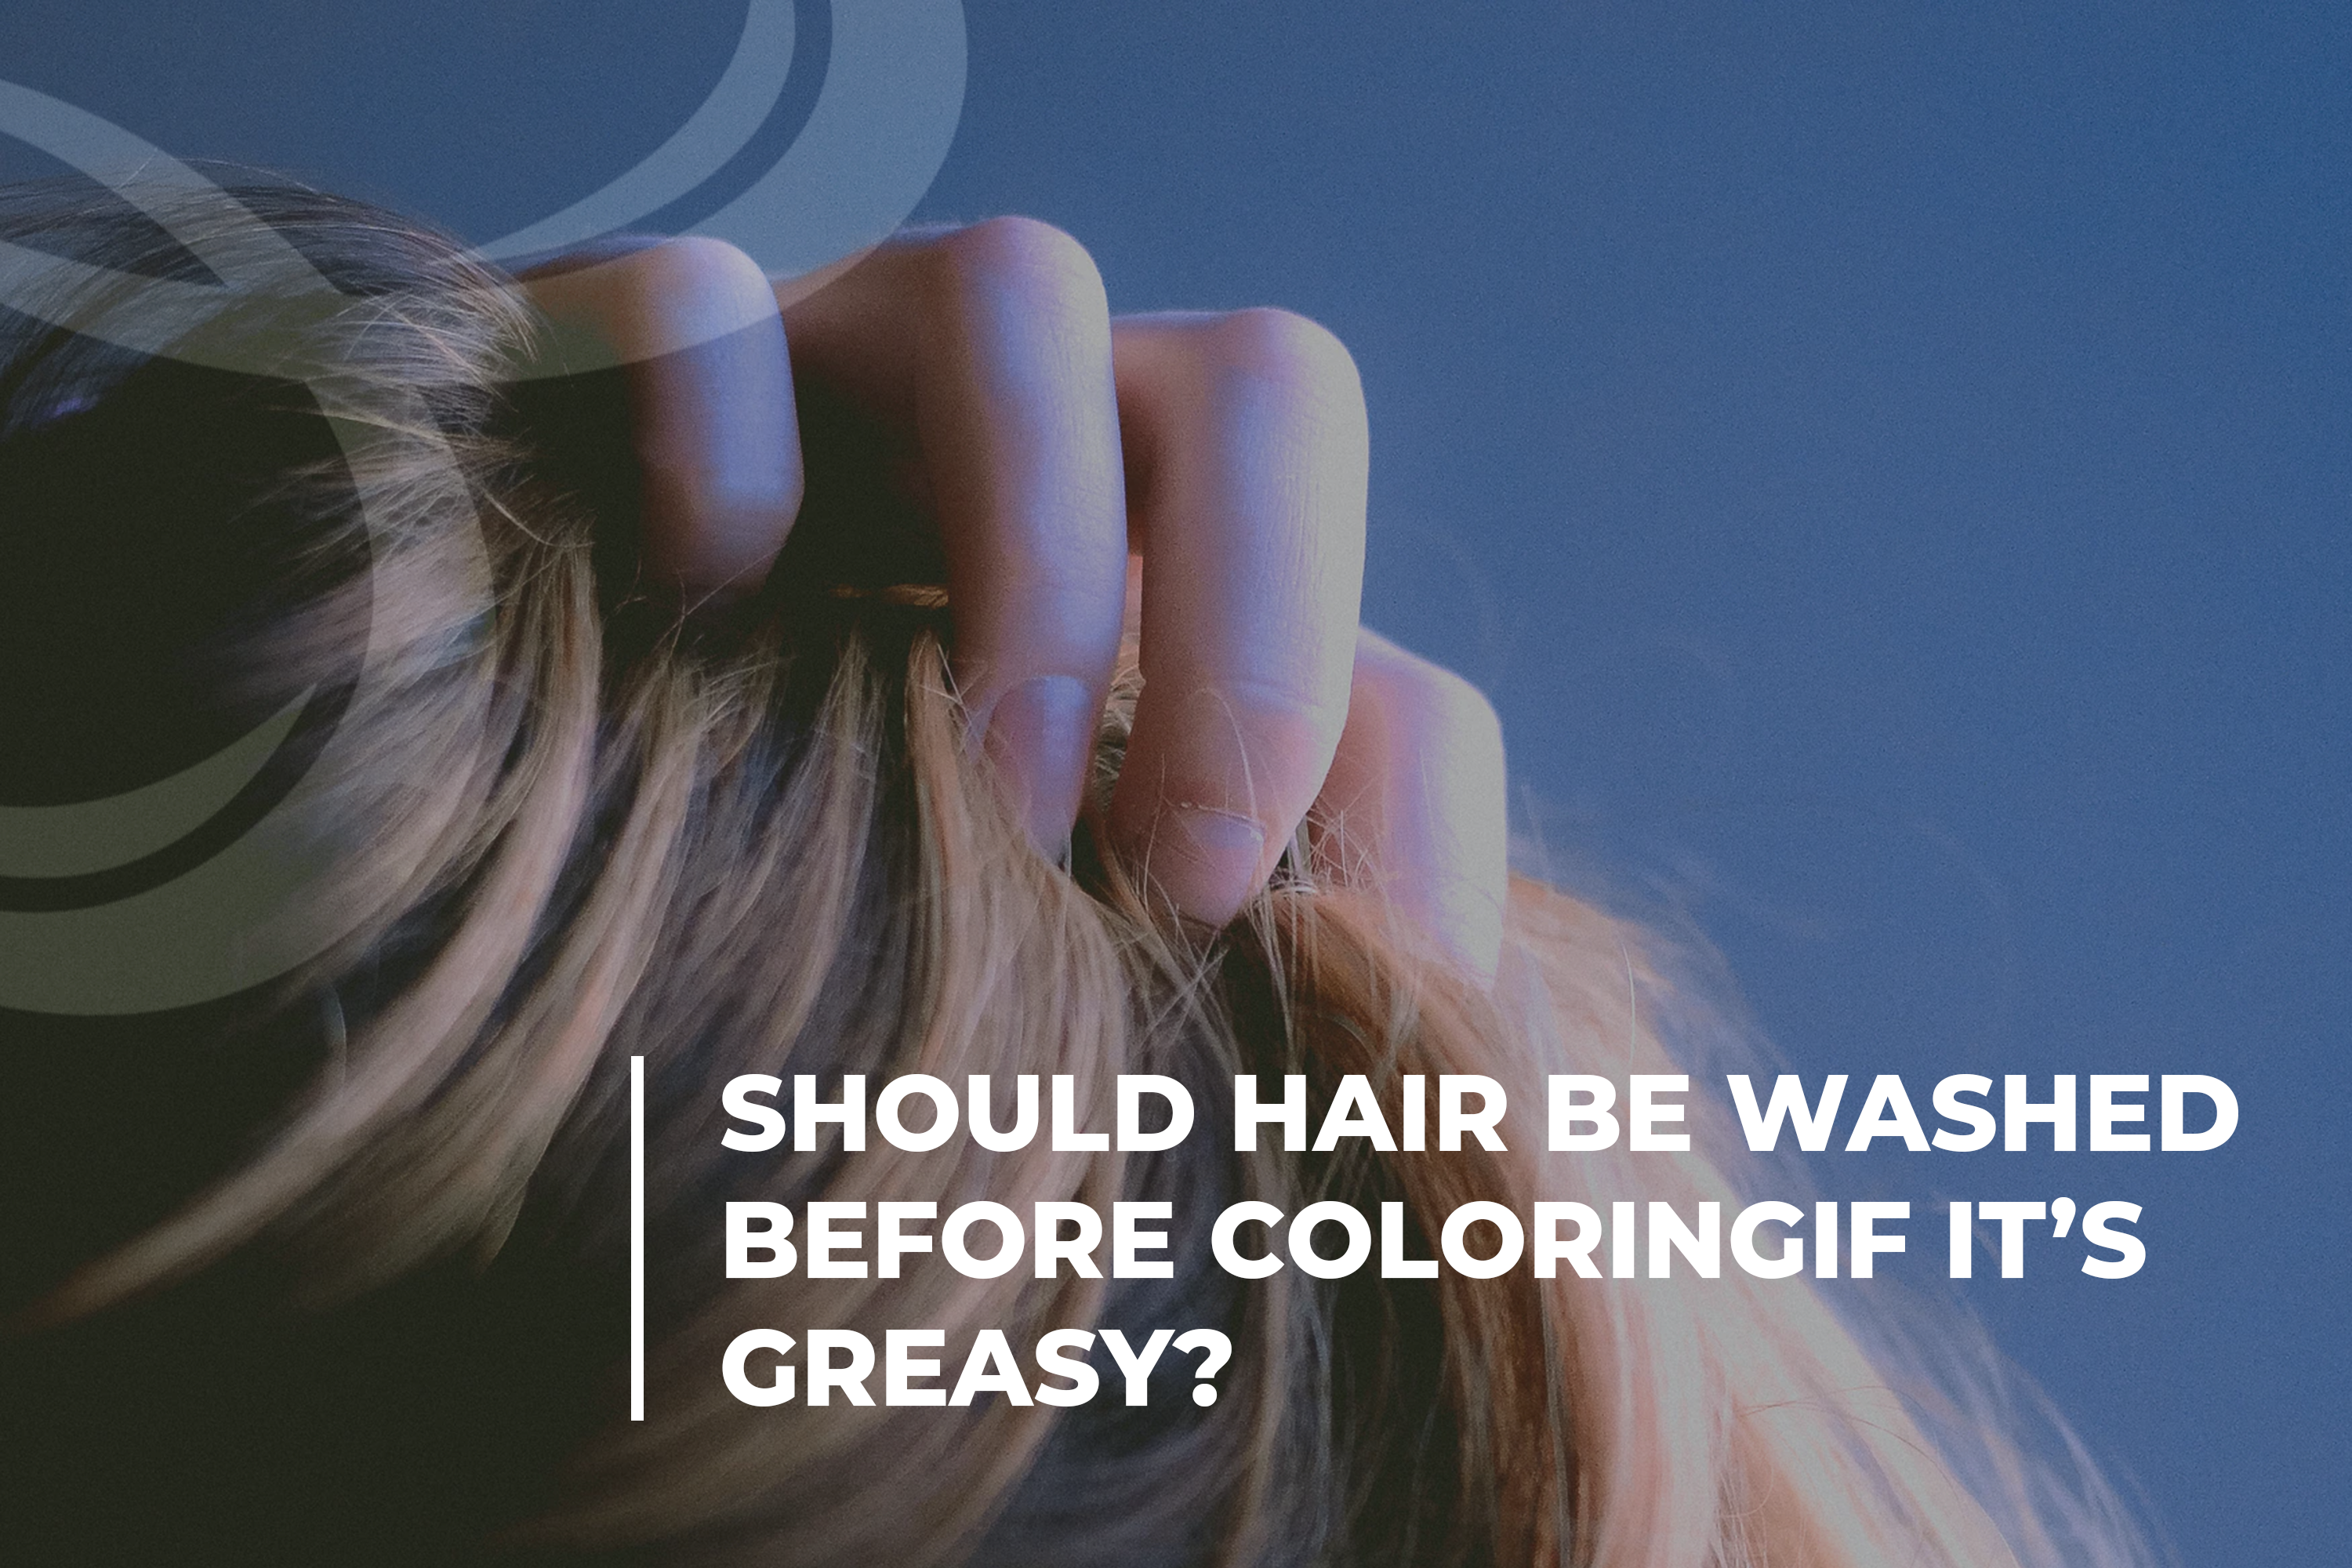 Should hair be washed before coloring if it's greasy